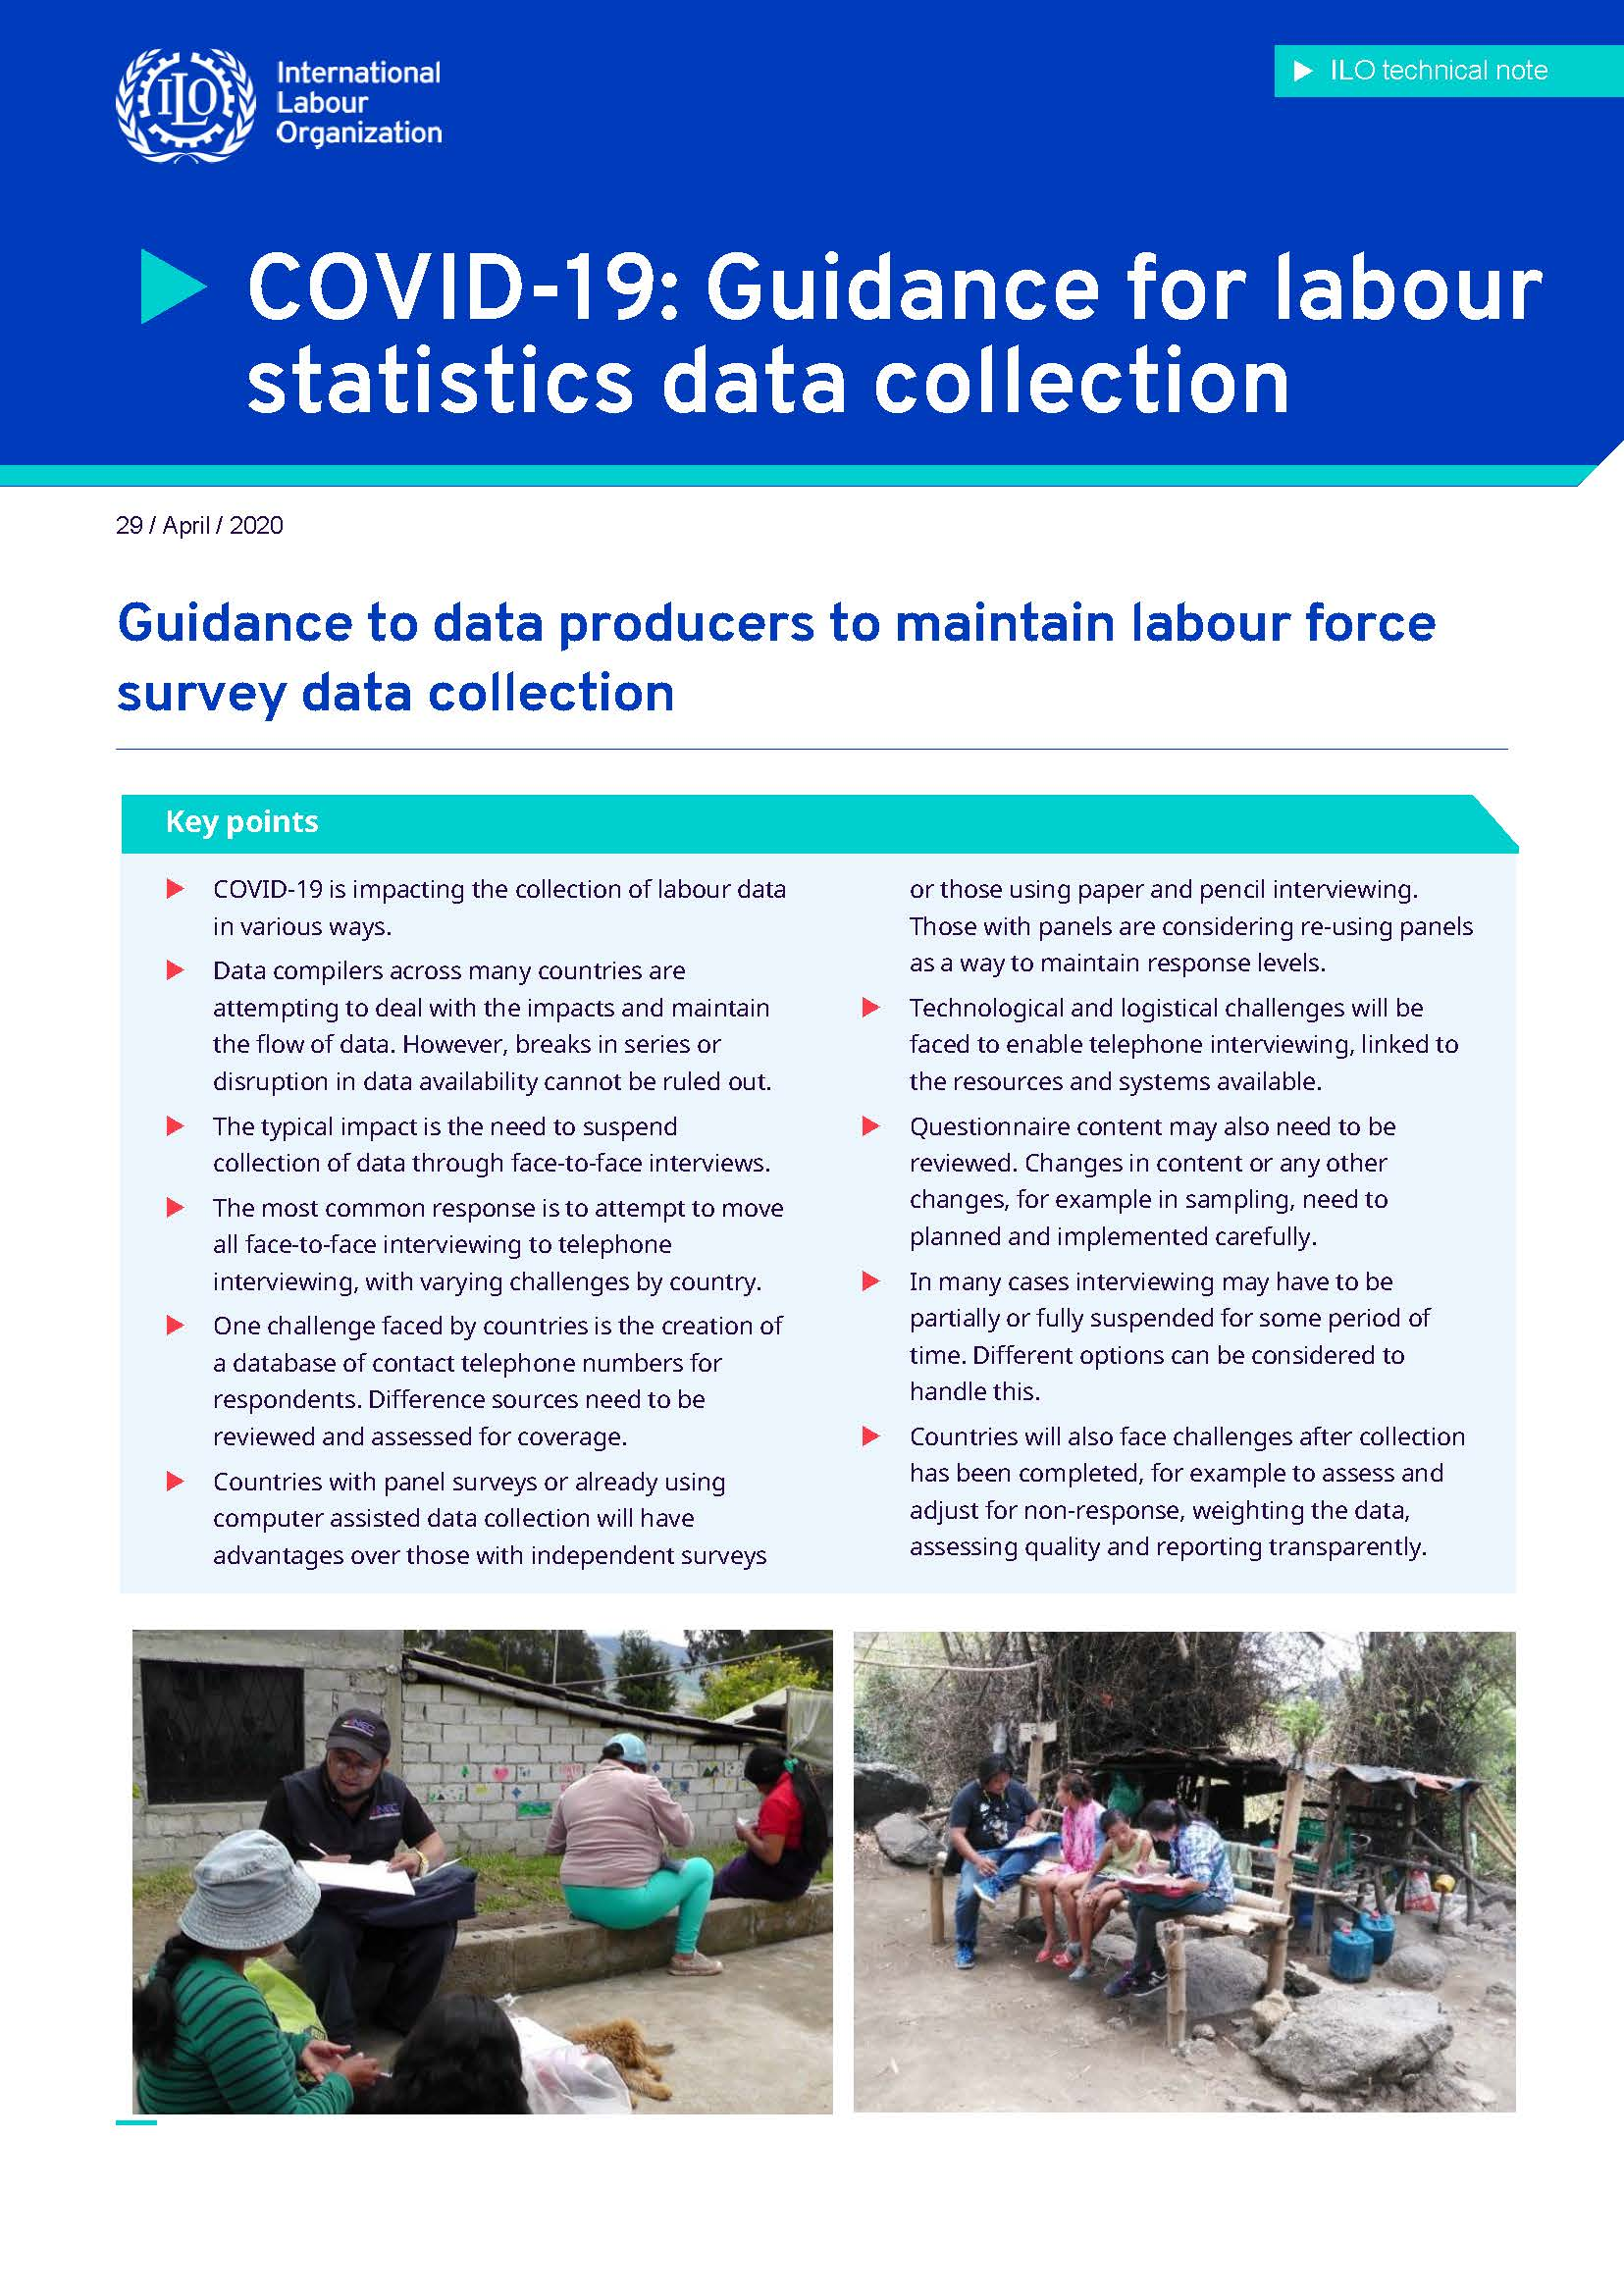 Guidance to data producers to maintain labour force survey data collection